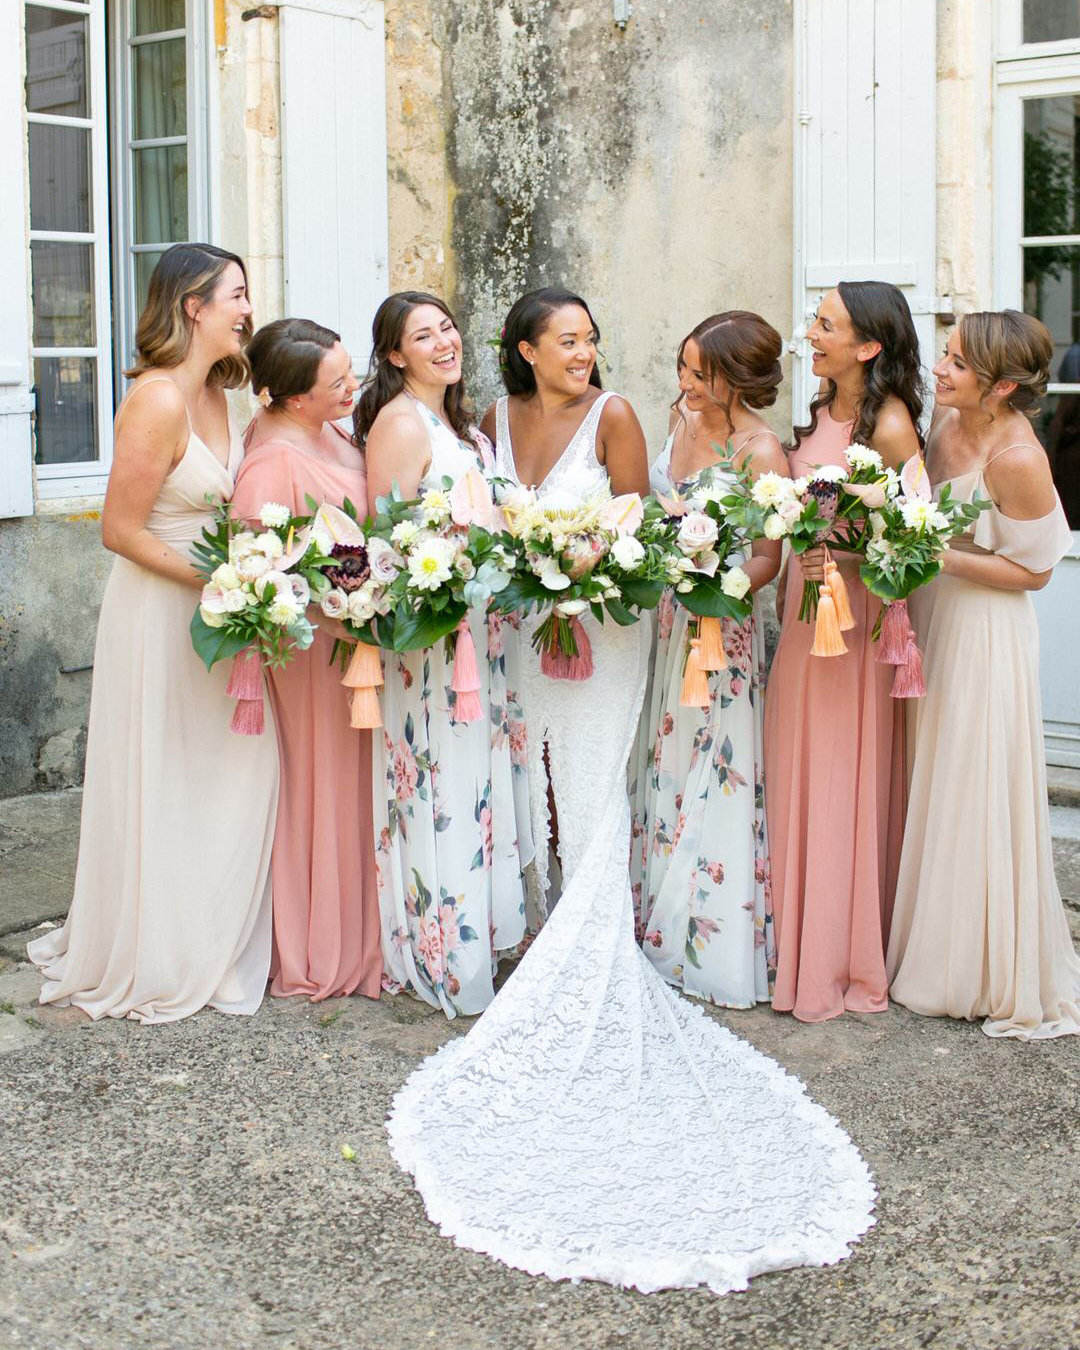 jen tim wedding bridesmaids in pink beige and pastel blue